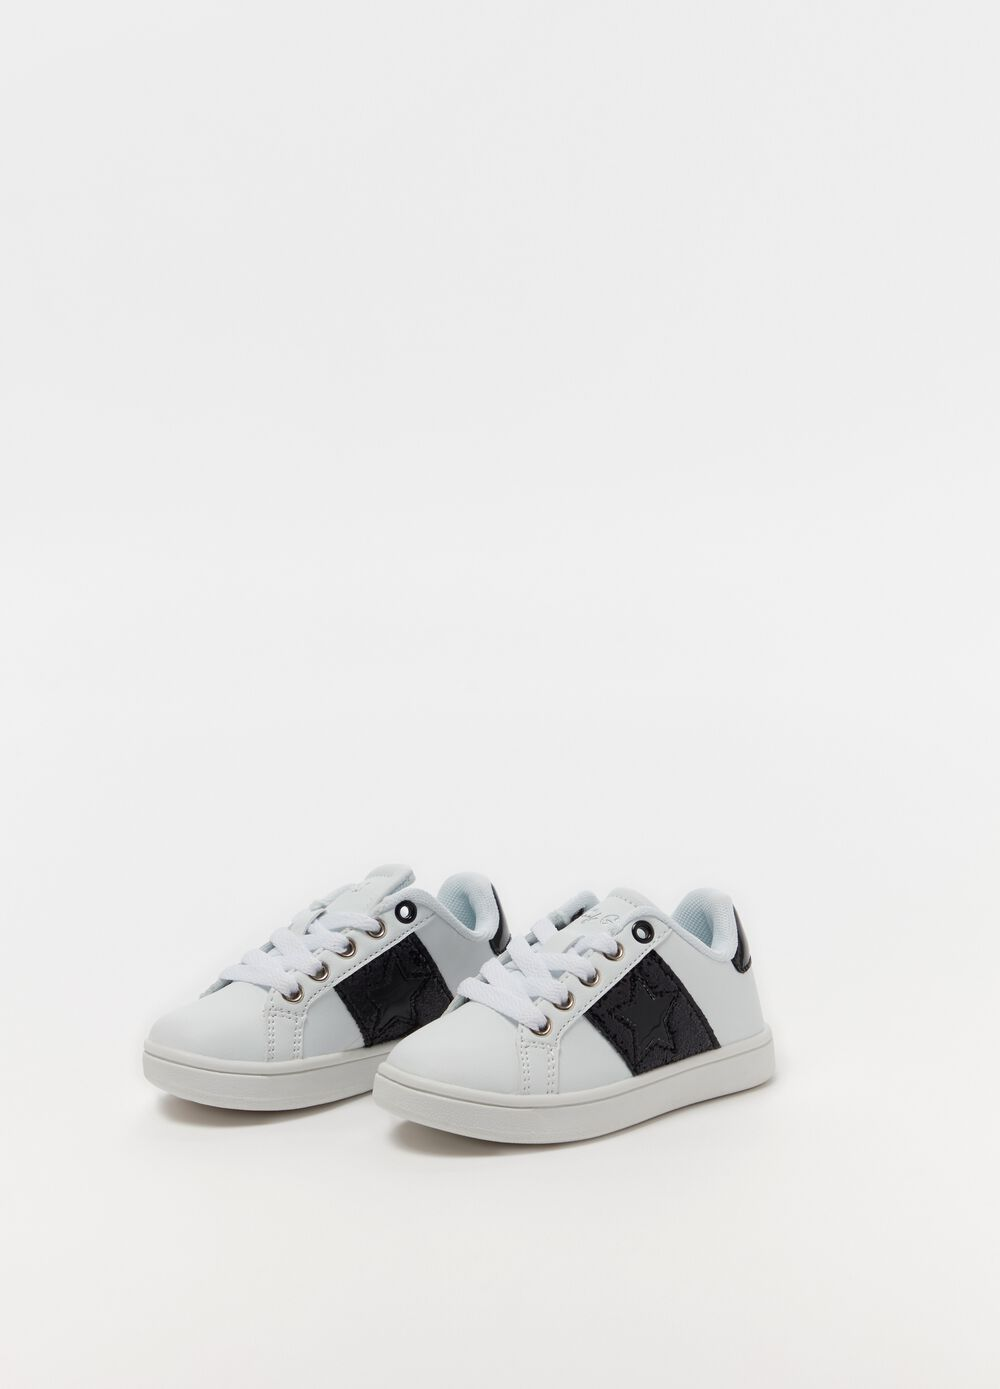 Sneakers with star embroidery